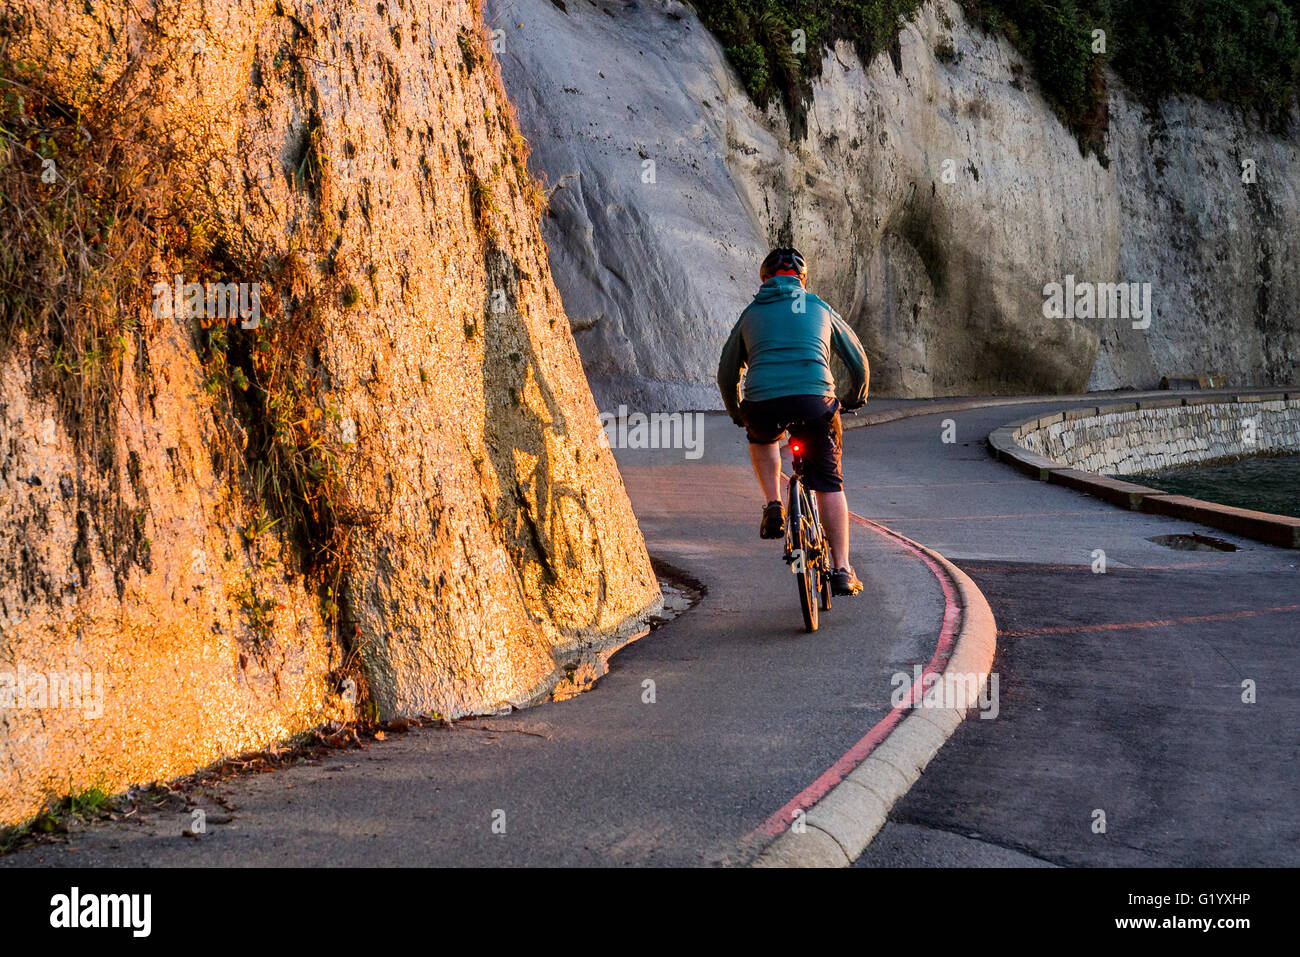 Bicyclist, Stanley Park seawall at sunset, Vancouver, British Columbia, Canada - Stock Image